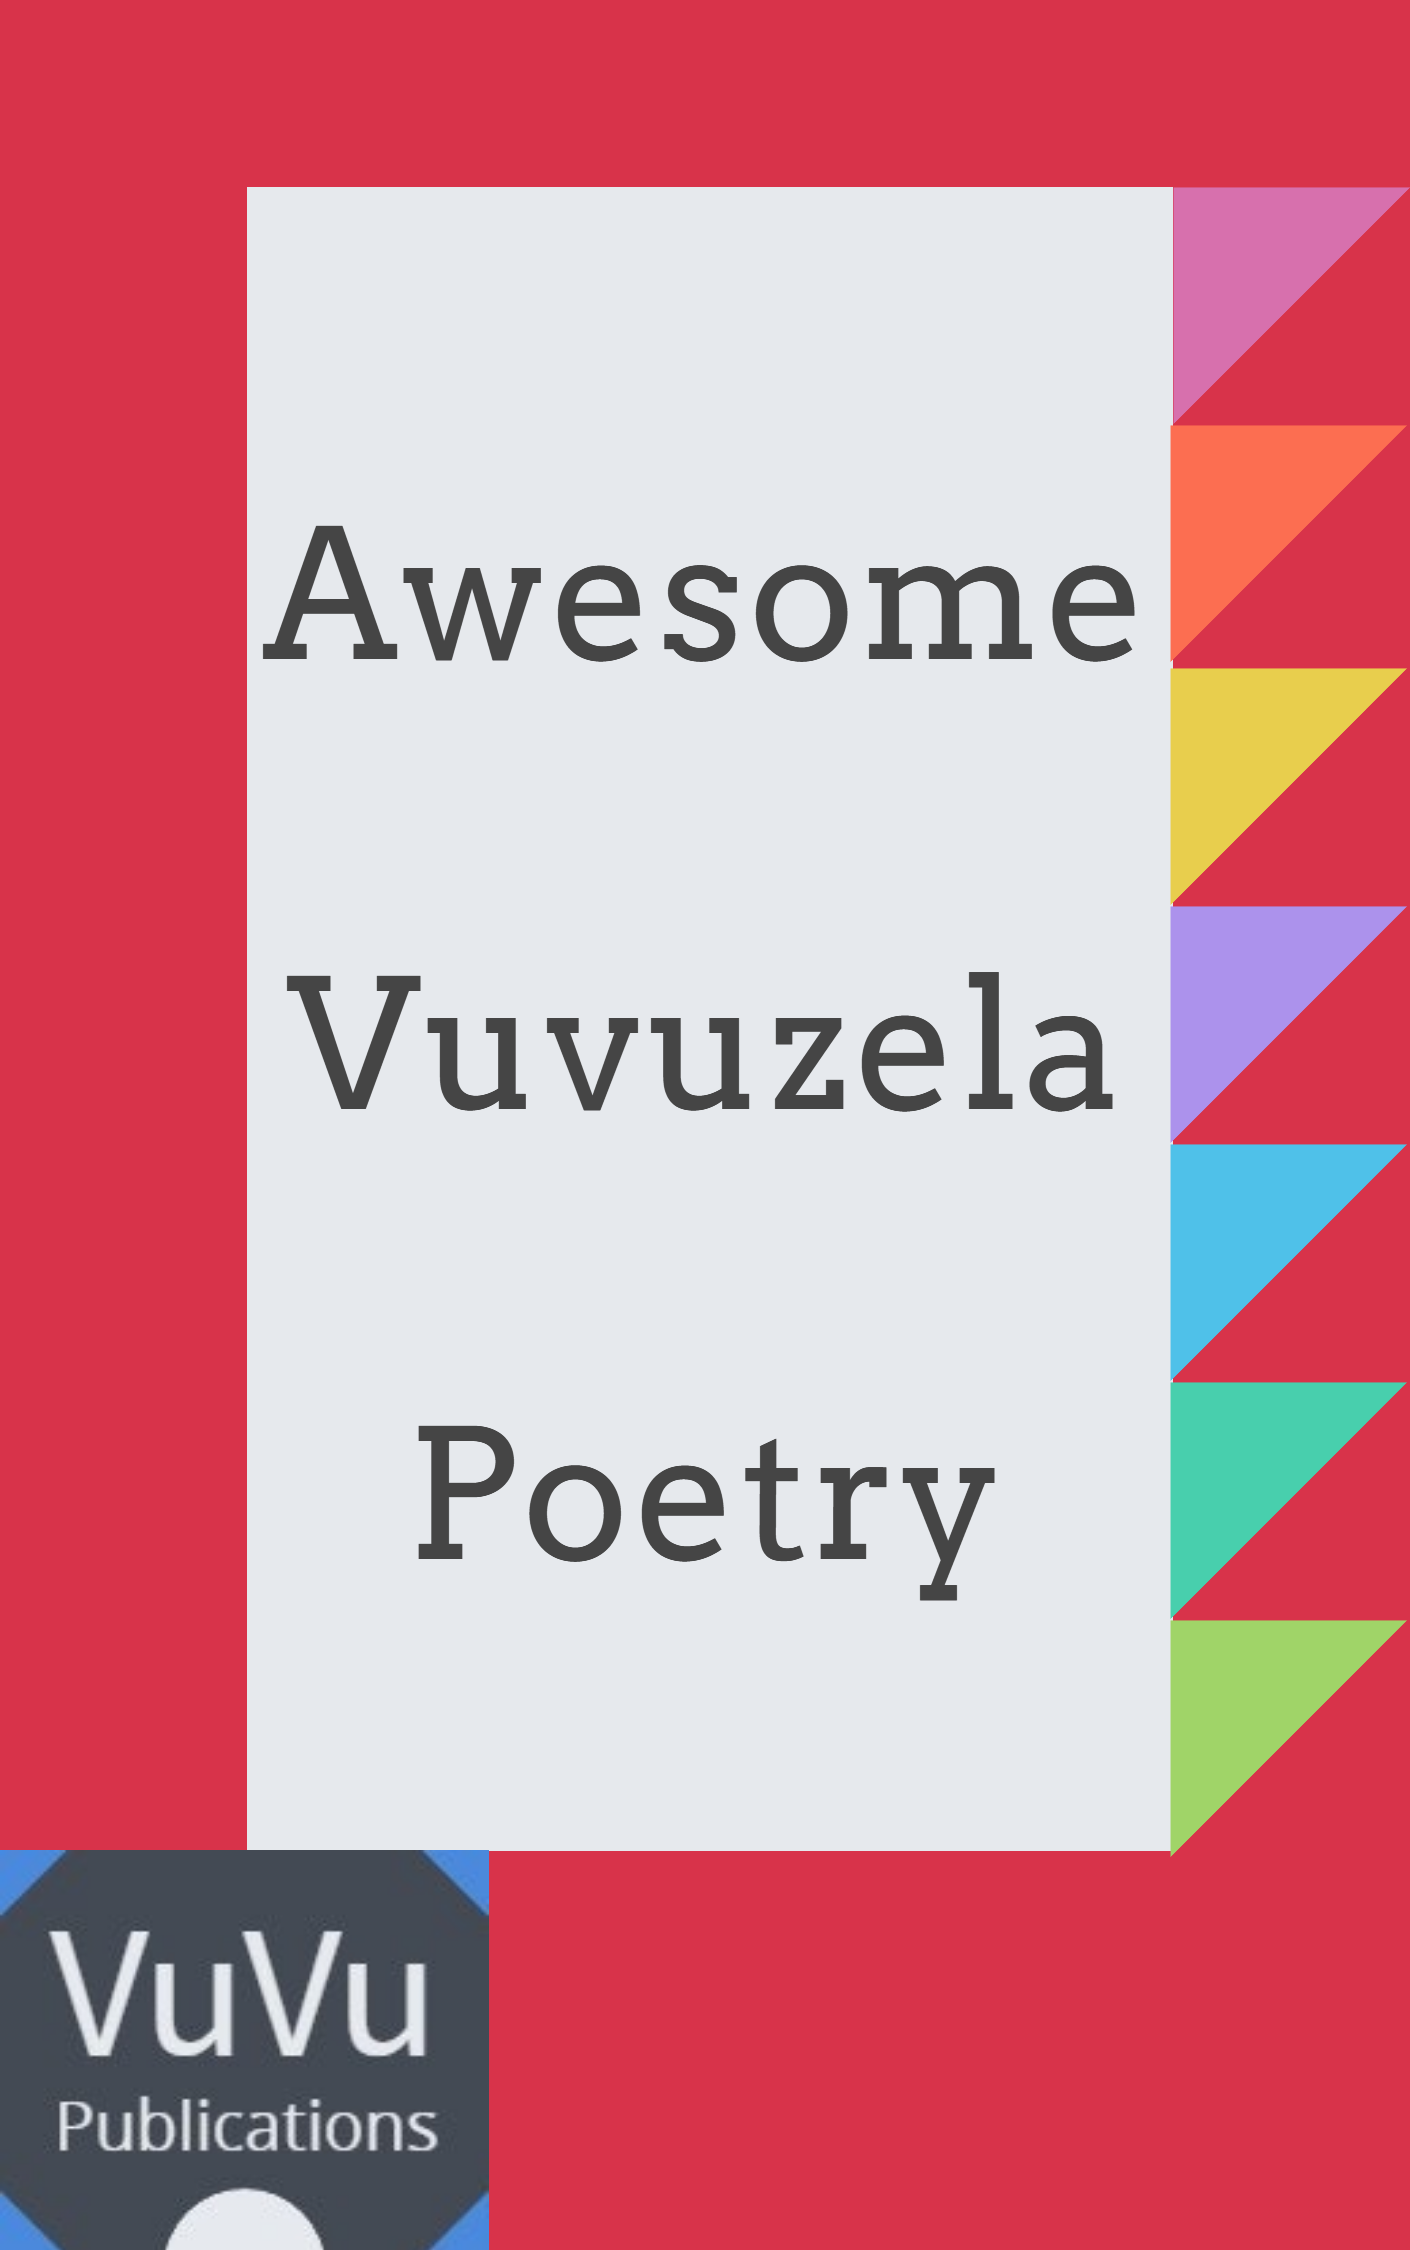 Awesome-Vuvuzela-Poetry